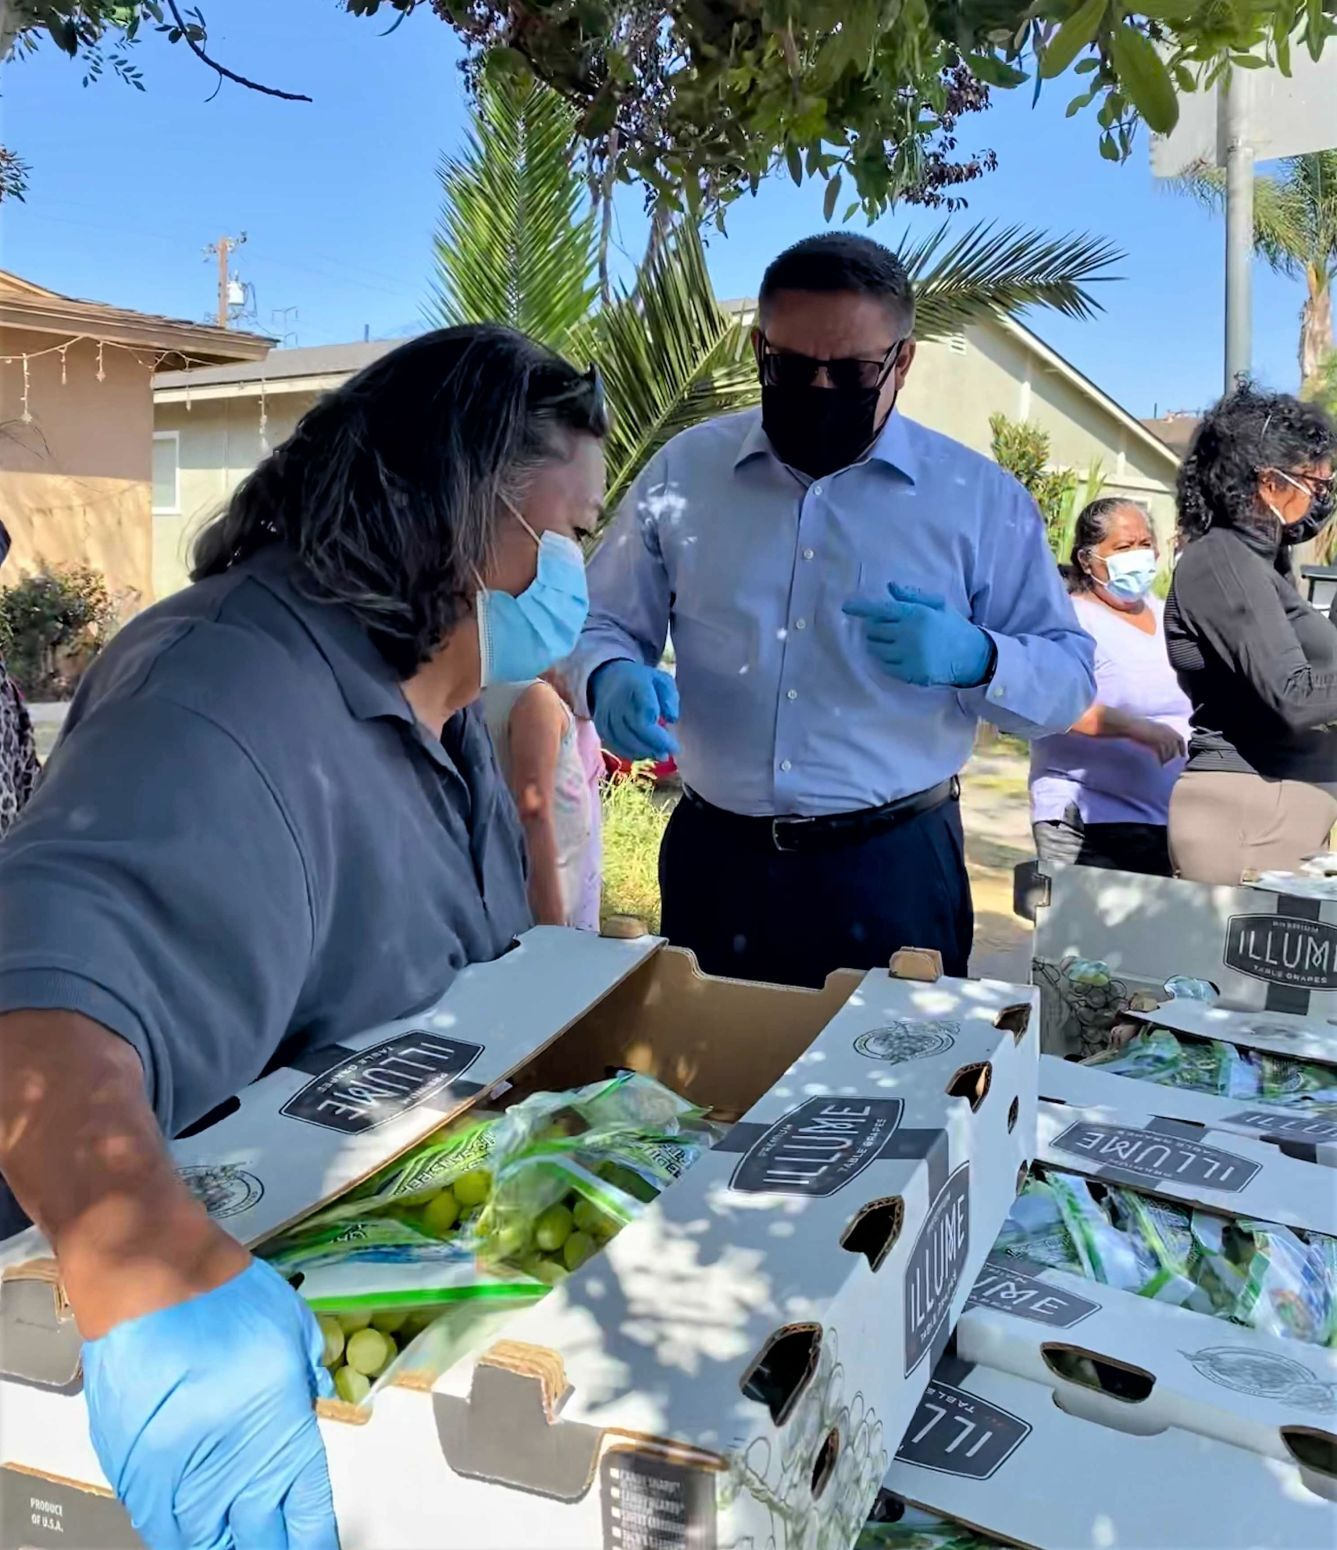 091621 Carbajal assists at Agricultores con Buena Salud.jpg